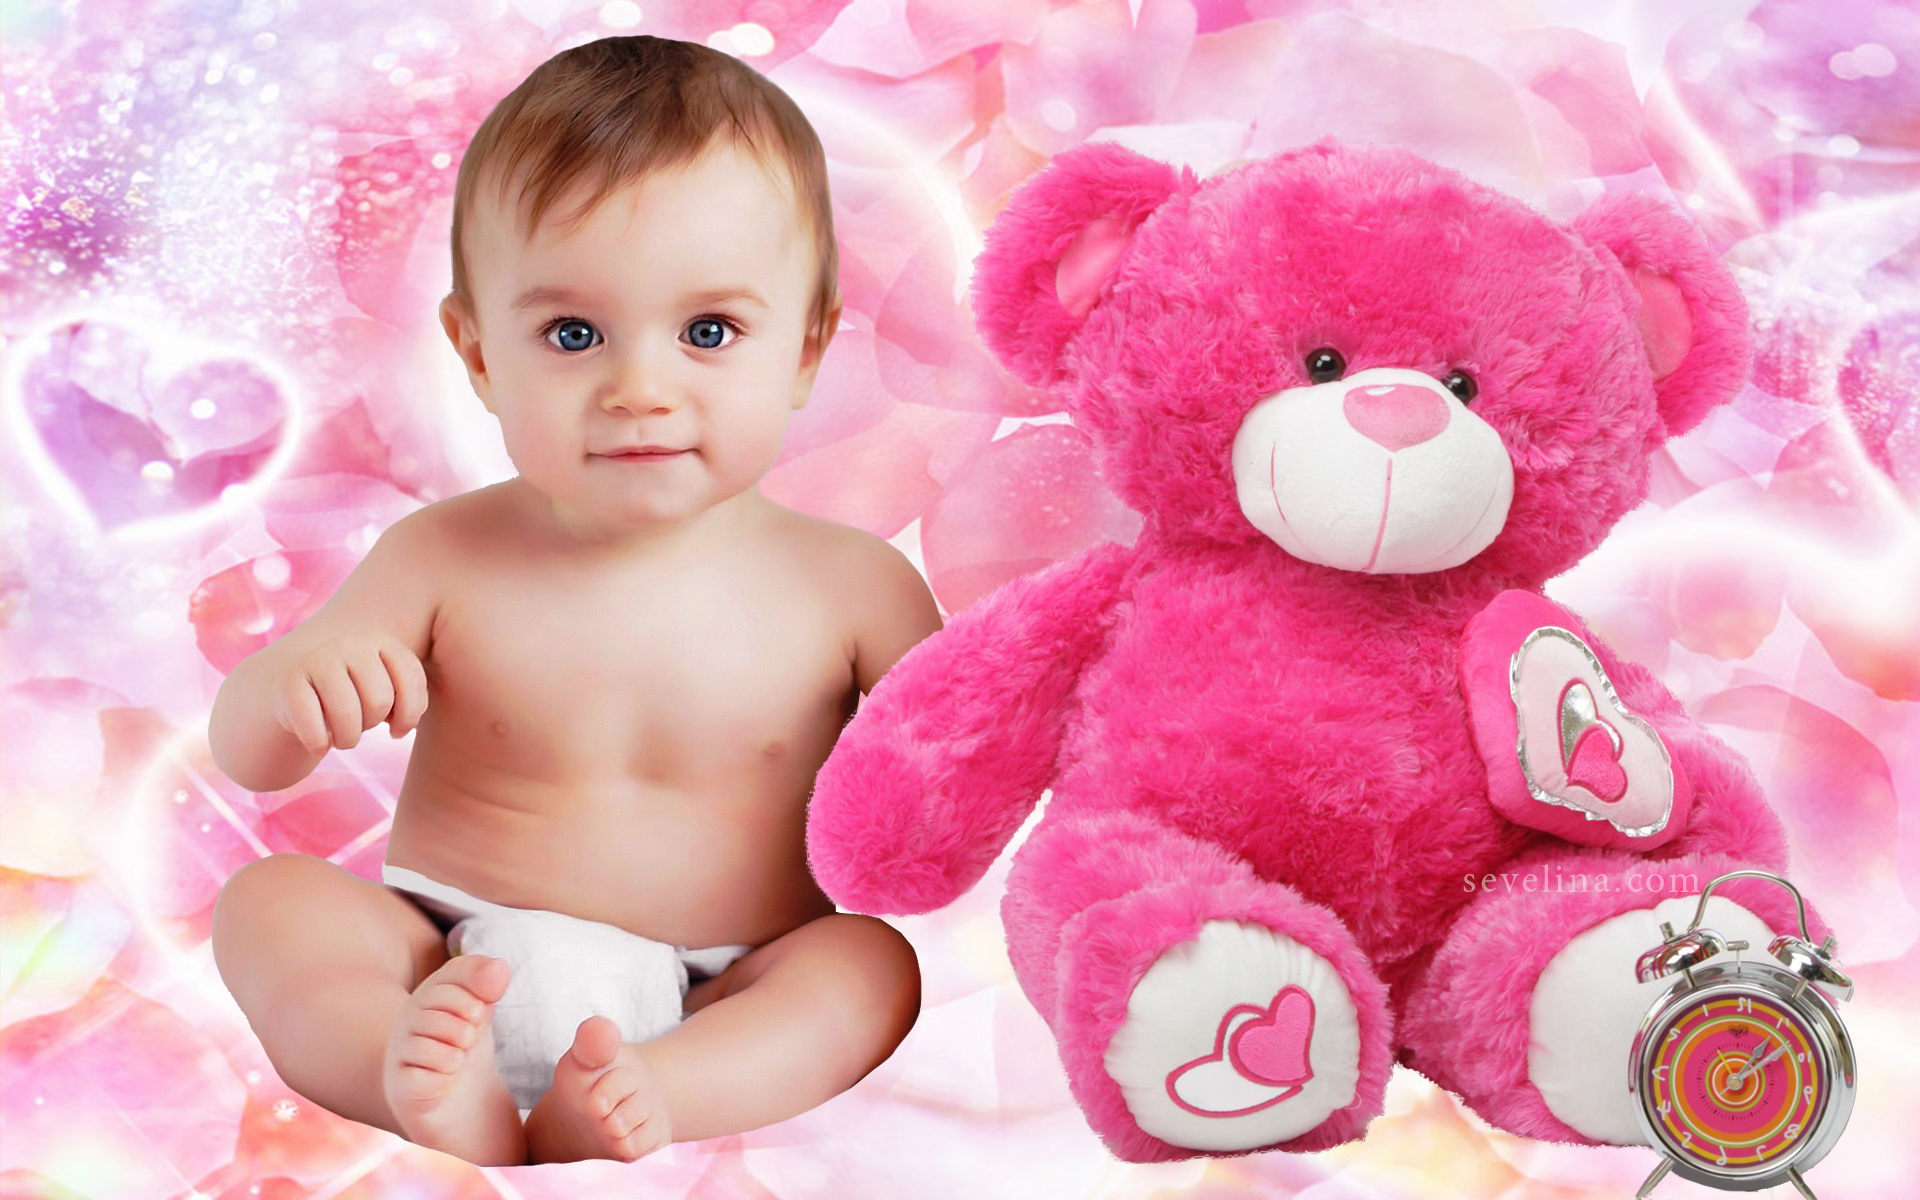 Love child Wallpaper Hd : Top 14 amazing Valentines day wallpaper 2014 ? Sevelina Games for girls